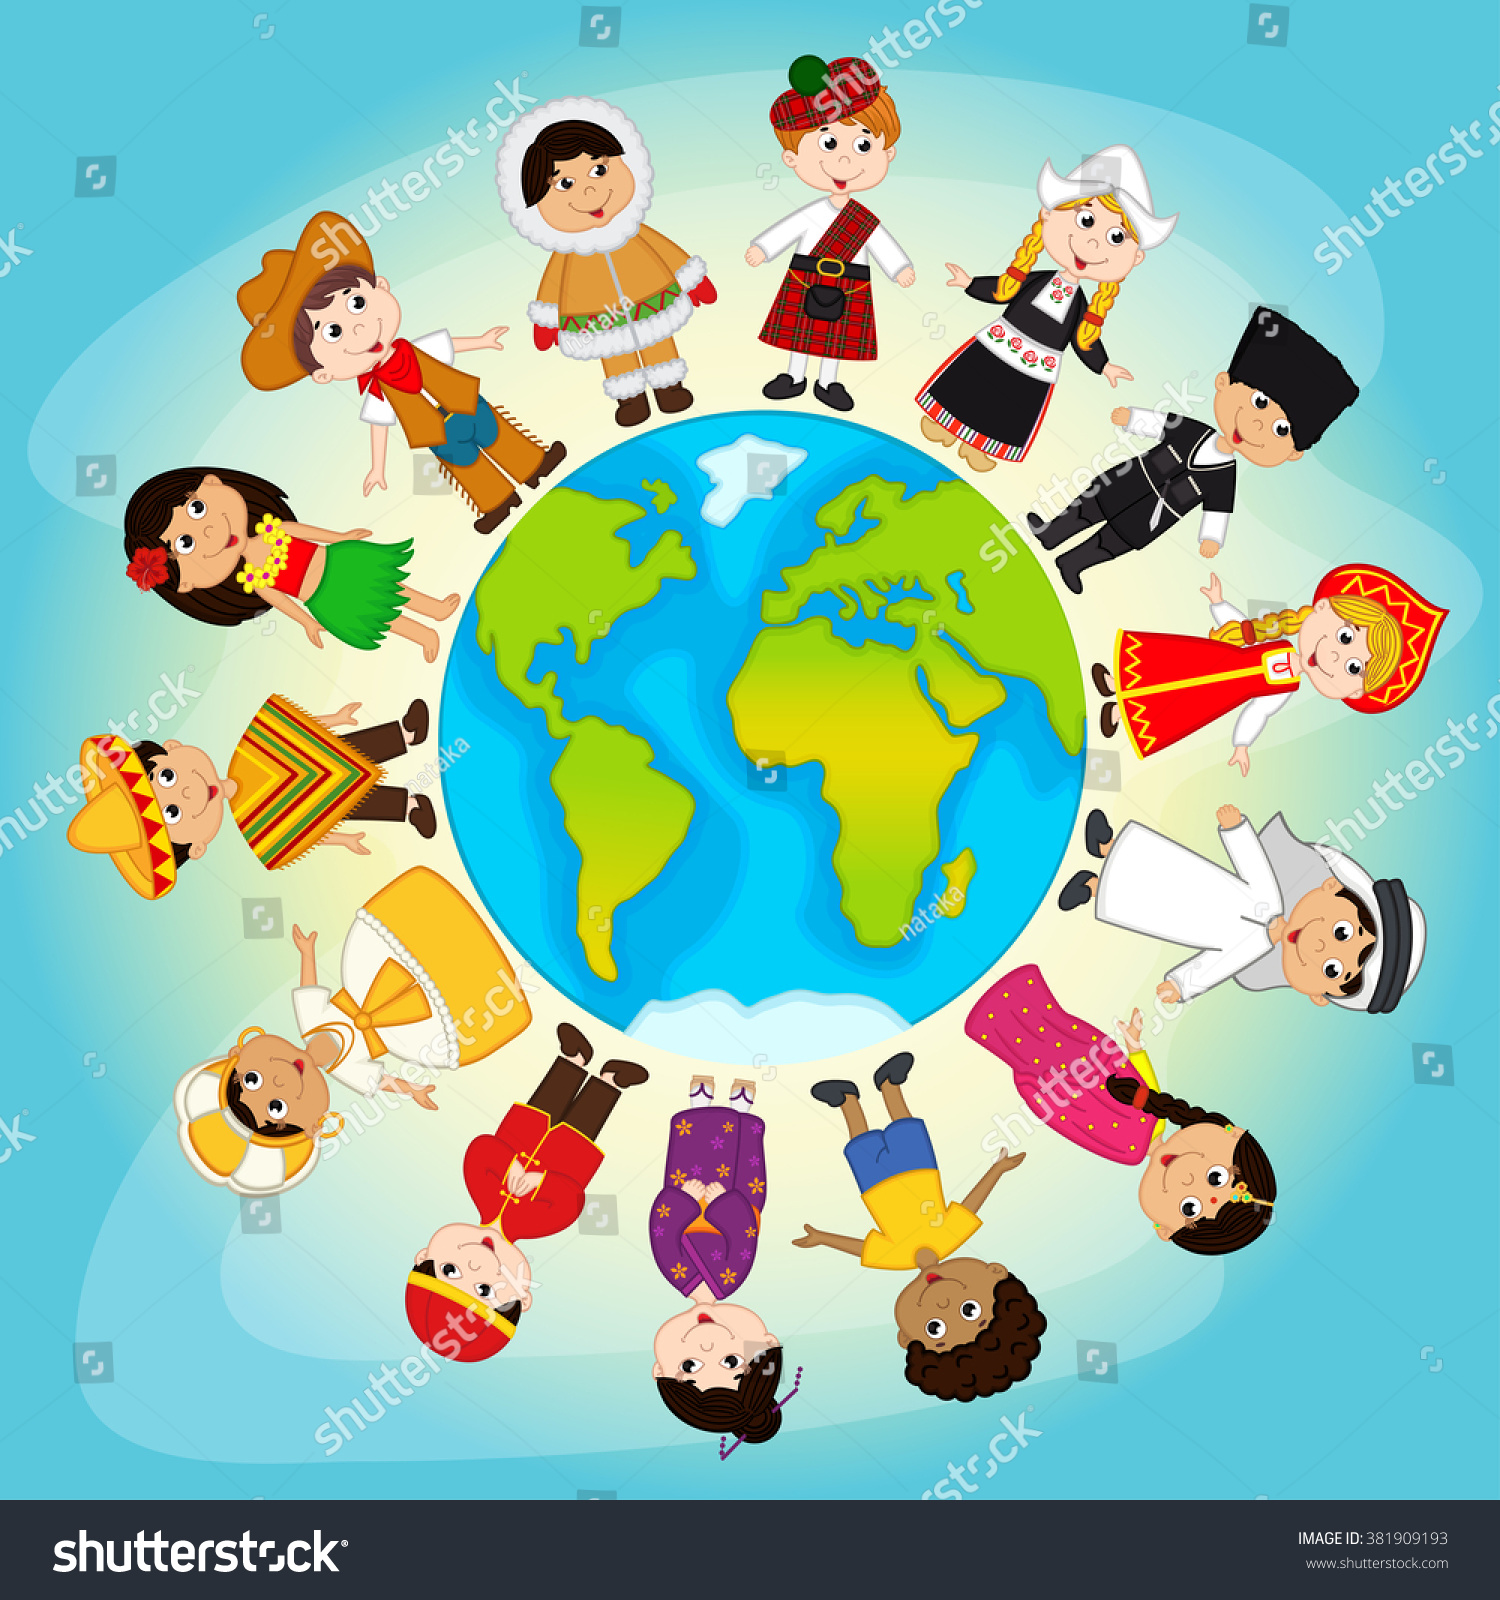 religion in a multicultural world Why study religion whether you consider yourself a religious person or not, or whether you think religion has played a positive or negative role in history more than ever before, the world we live in is both multicultural and global.